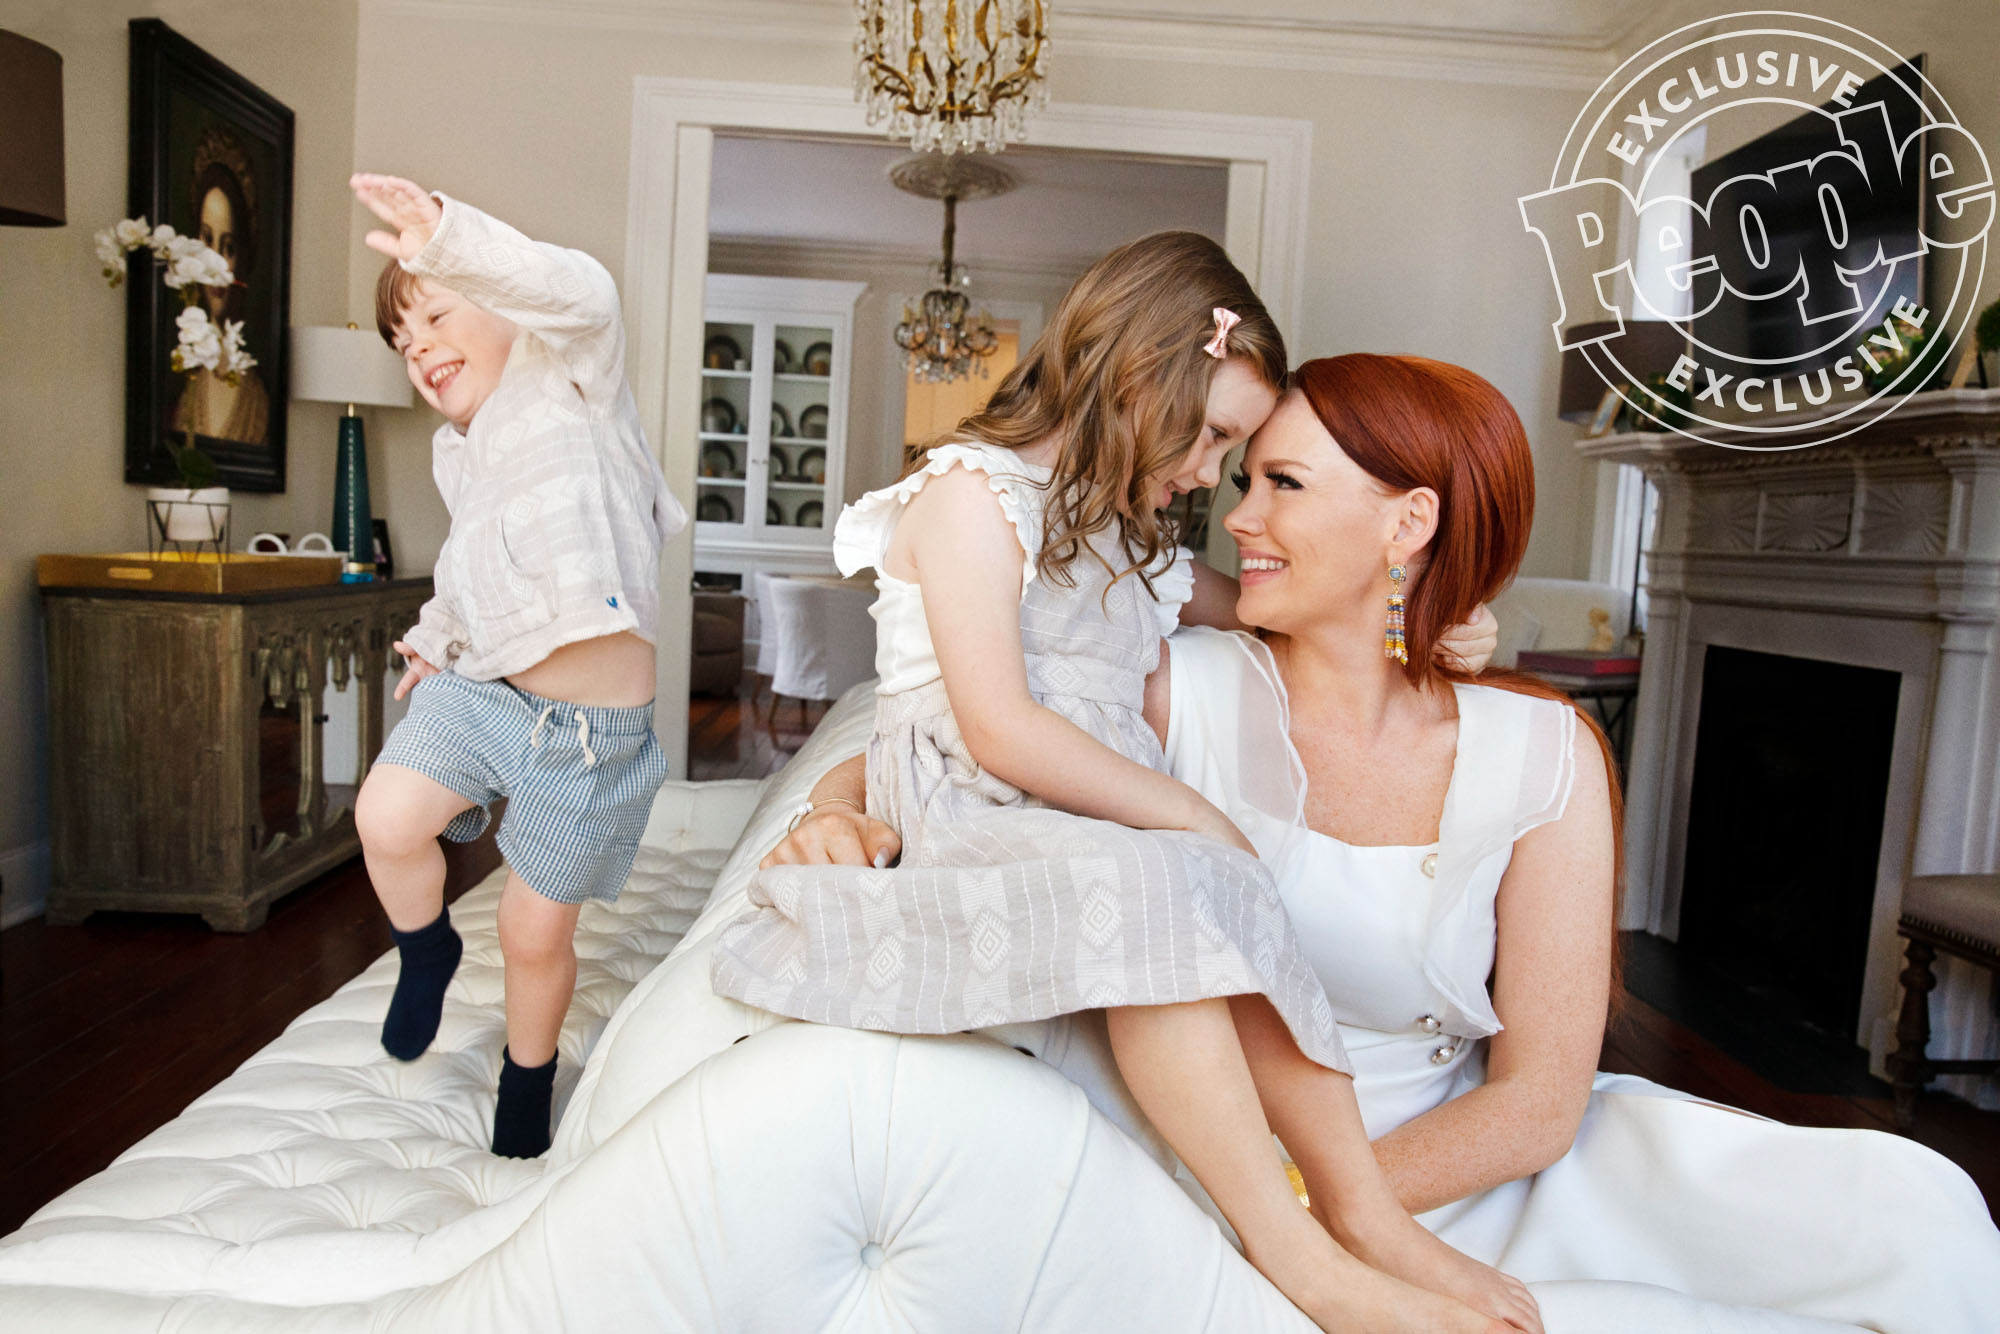 Kathryn Dennis with kids Saint and Kensie